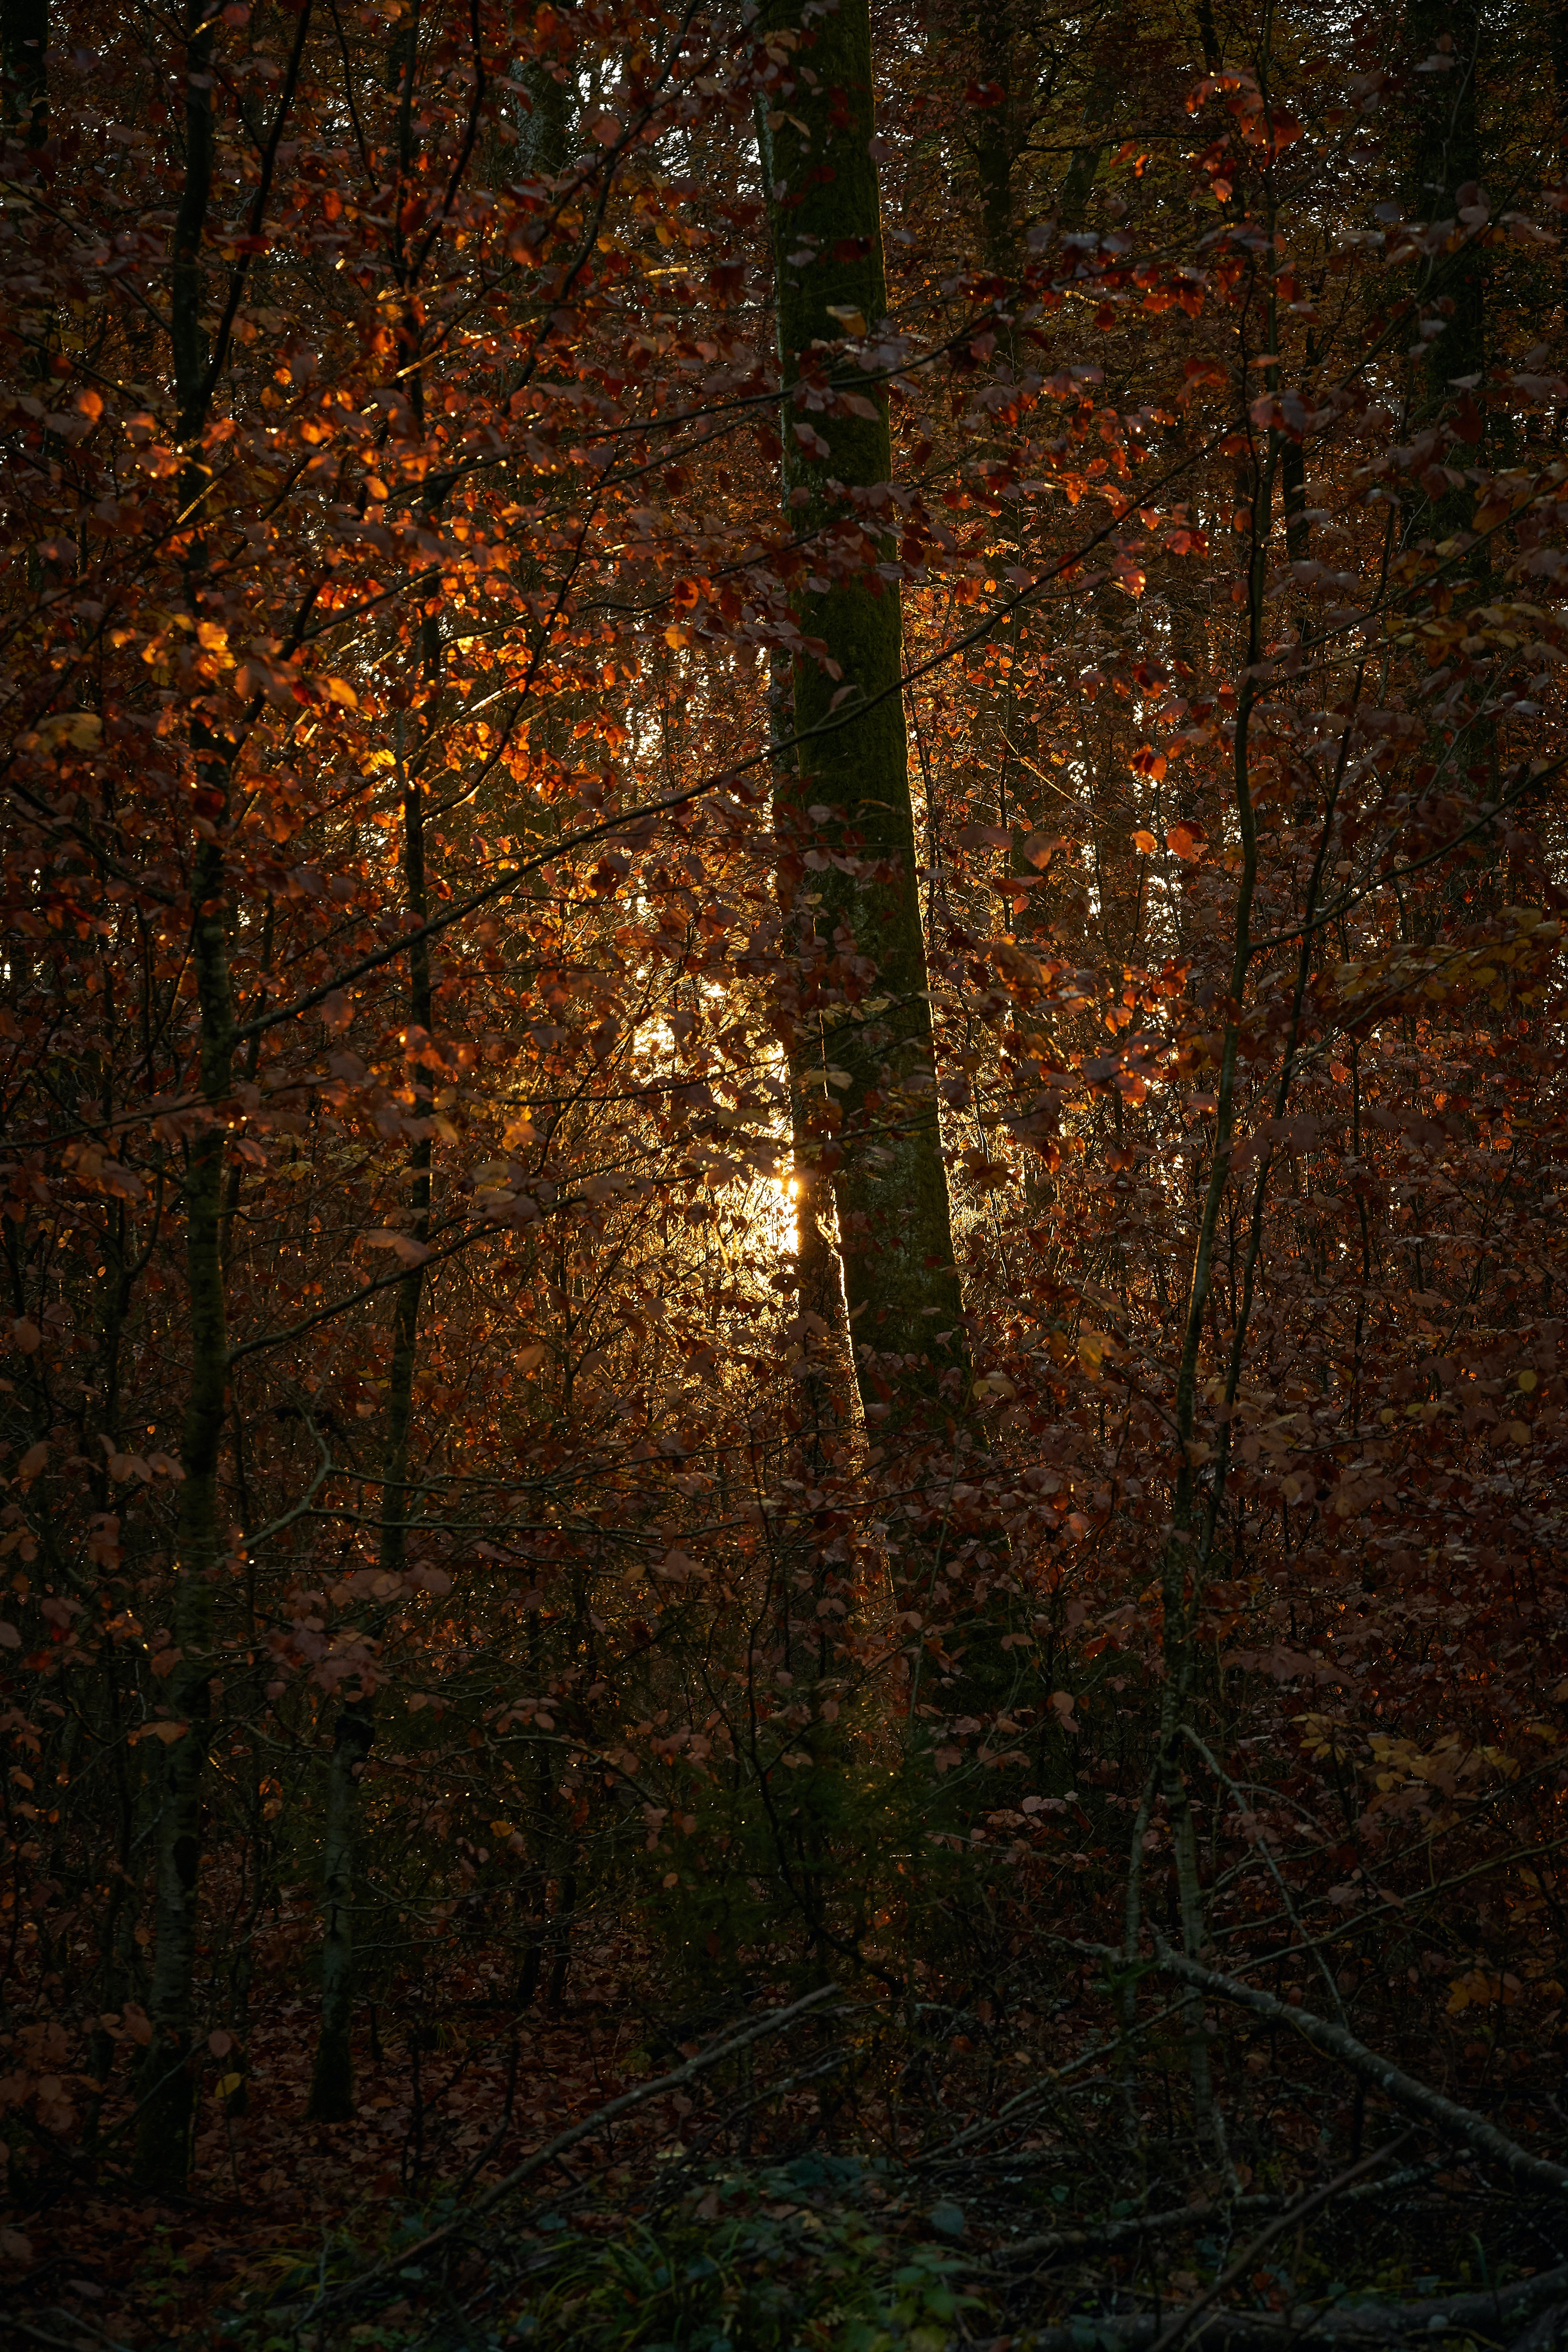 114280 download wallpaper Nature, Forest, Trees, Branches, Leaves, Shine, Light, Sun screensavers and pictures for free